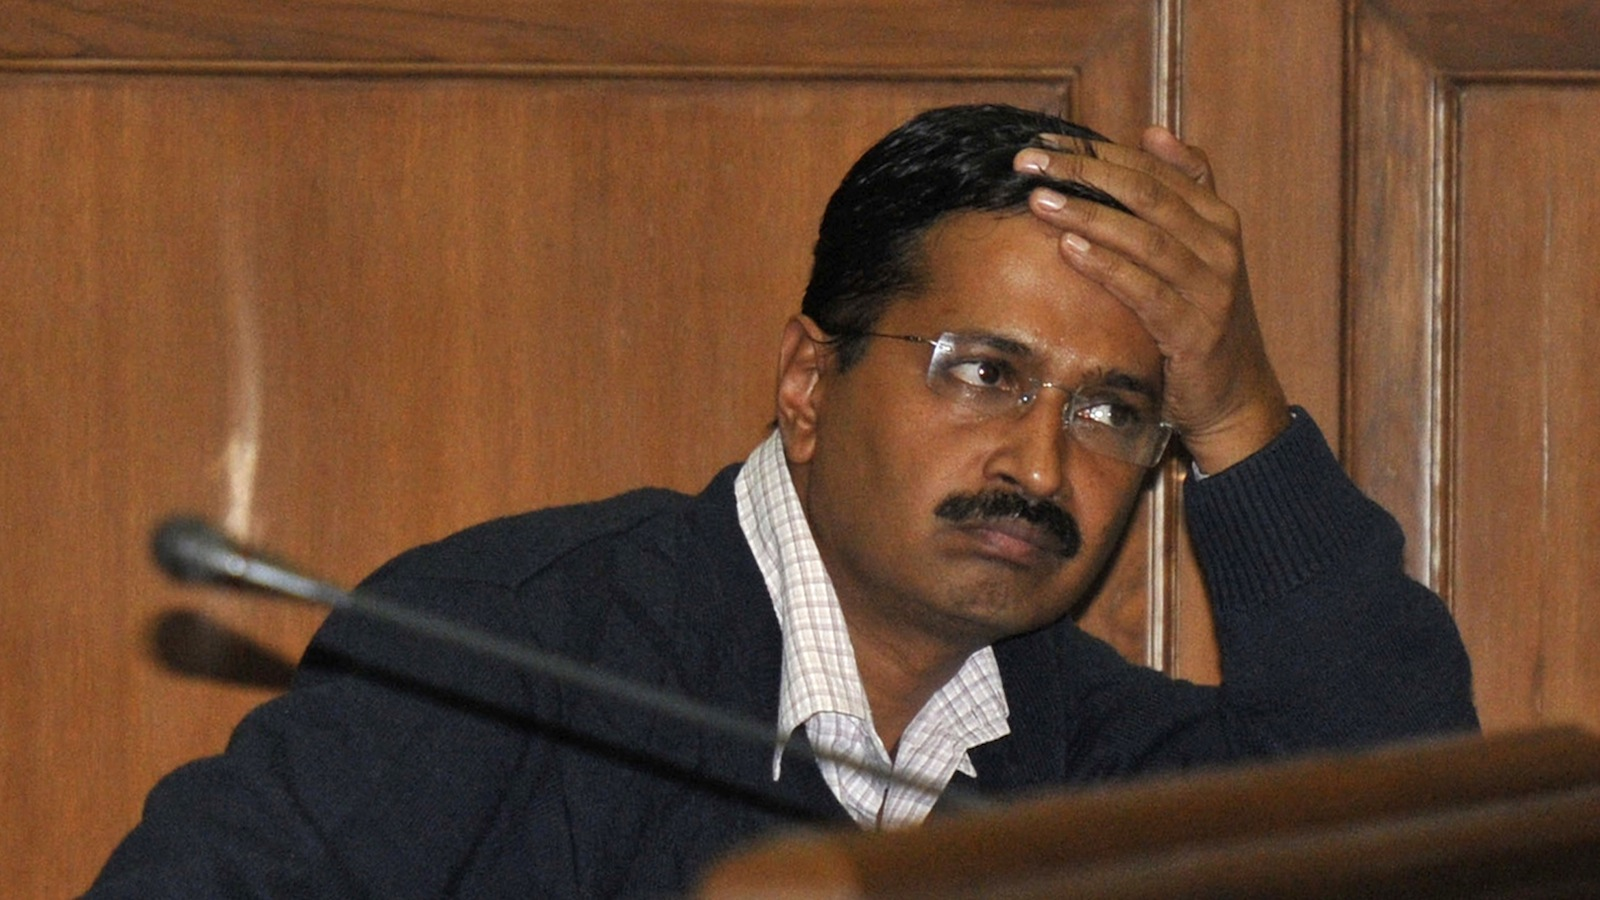 Delhi's Chief Minister Arvind Kejriwal, chief of the Aam Aadmi (Common Man) Party (AAP) attends a session at the Delhi assembly in New Delhi February 14, 2014. Kejriwal resigned on Friday over delays in the introduction of an anti-corruption bill he was pushing for. Kejriwal, a former tax collector who heads The AAP, seized a stunning victory in India's capital in state elections in December on an anti-corruption platform. REUTERS/Stringer